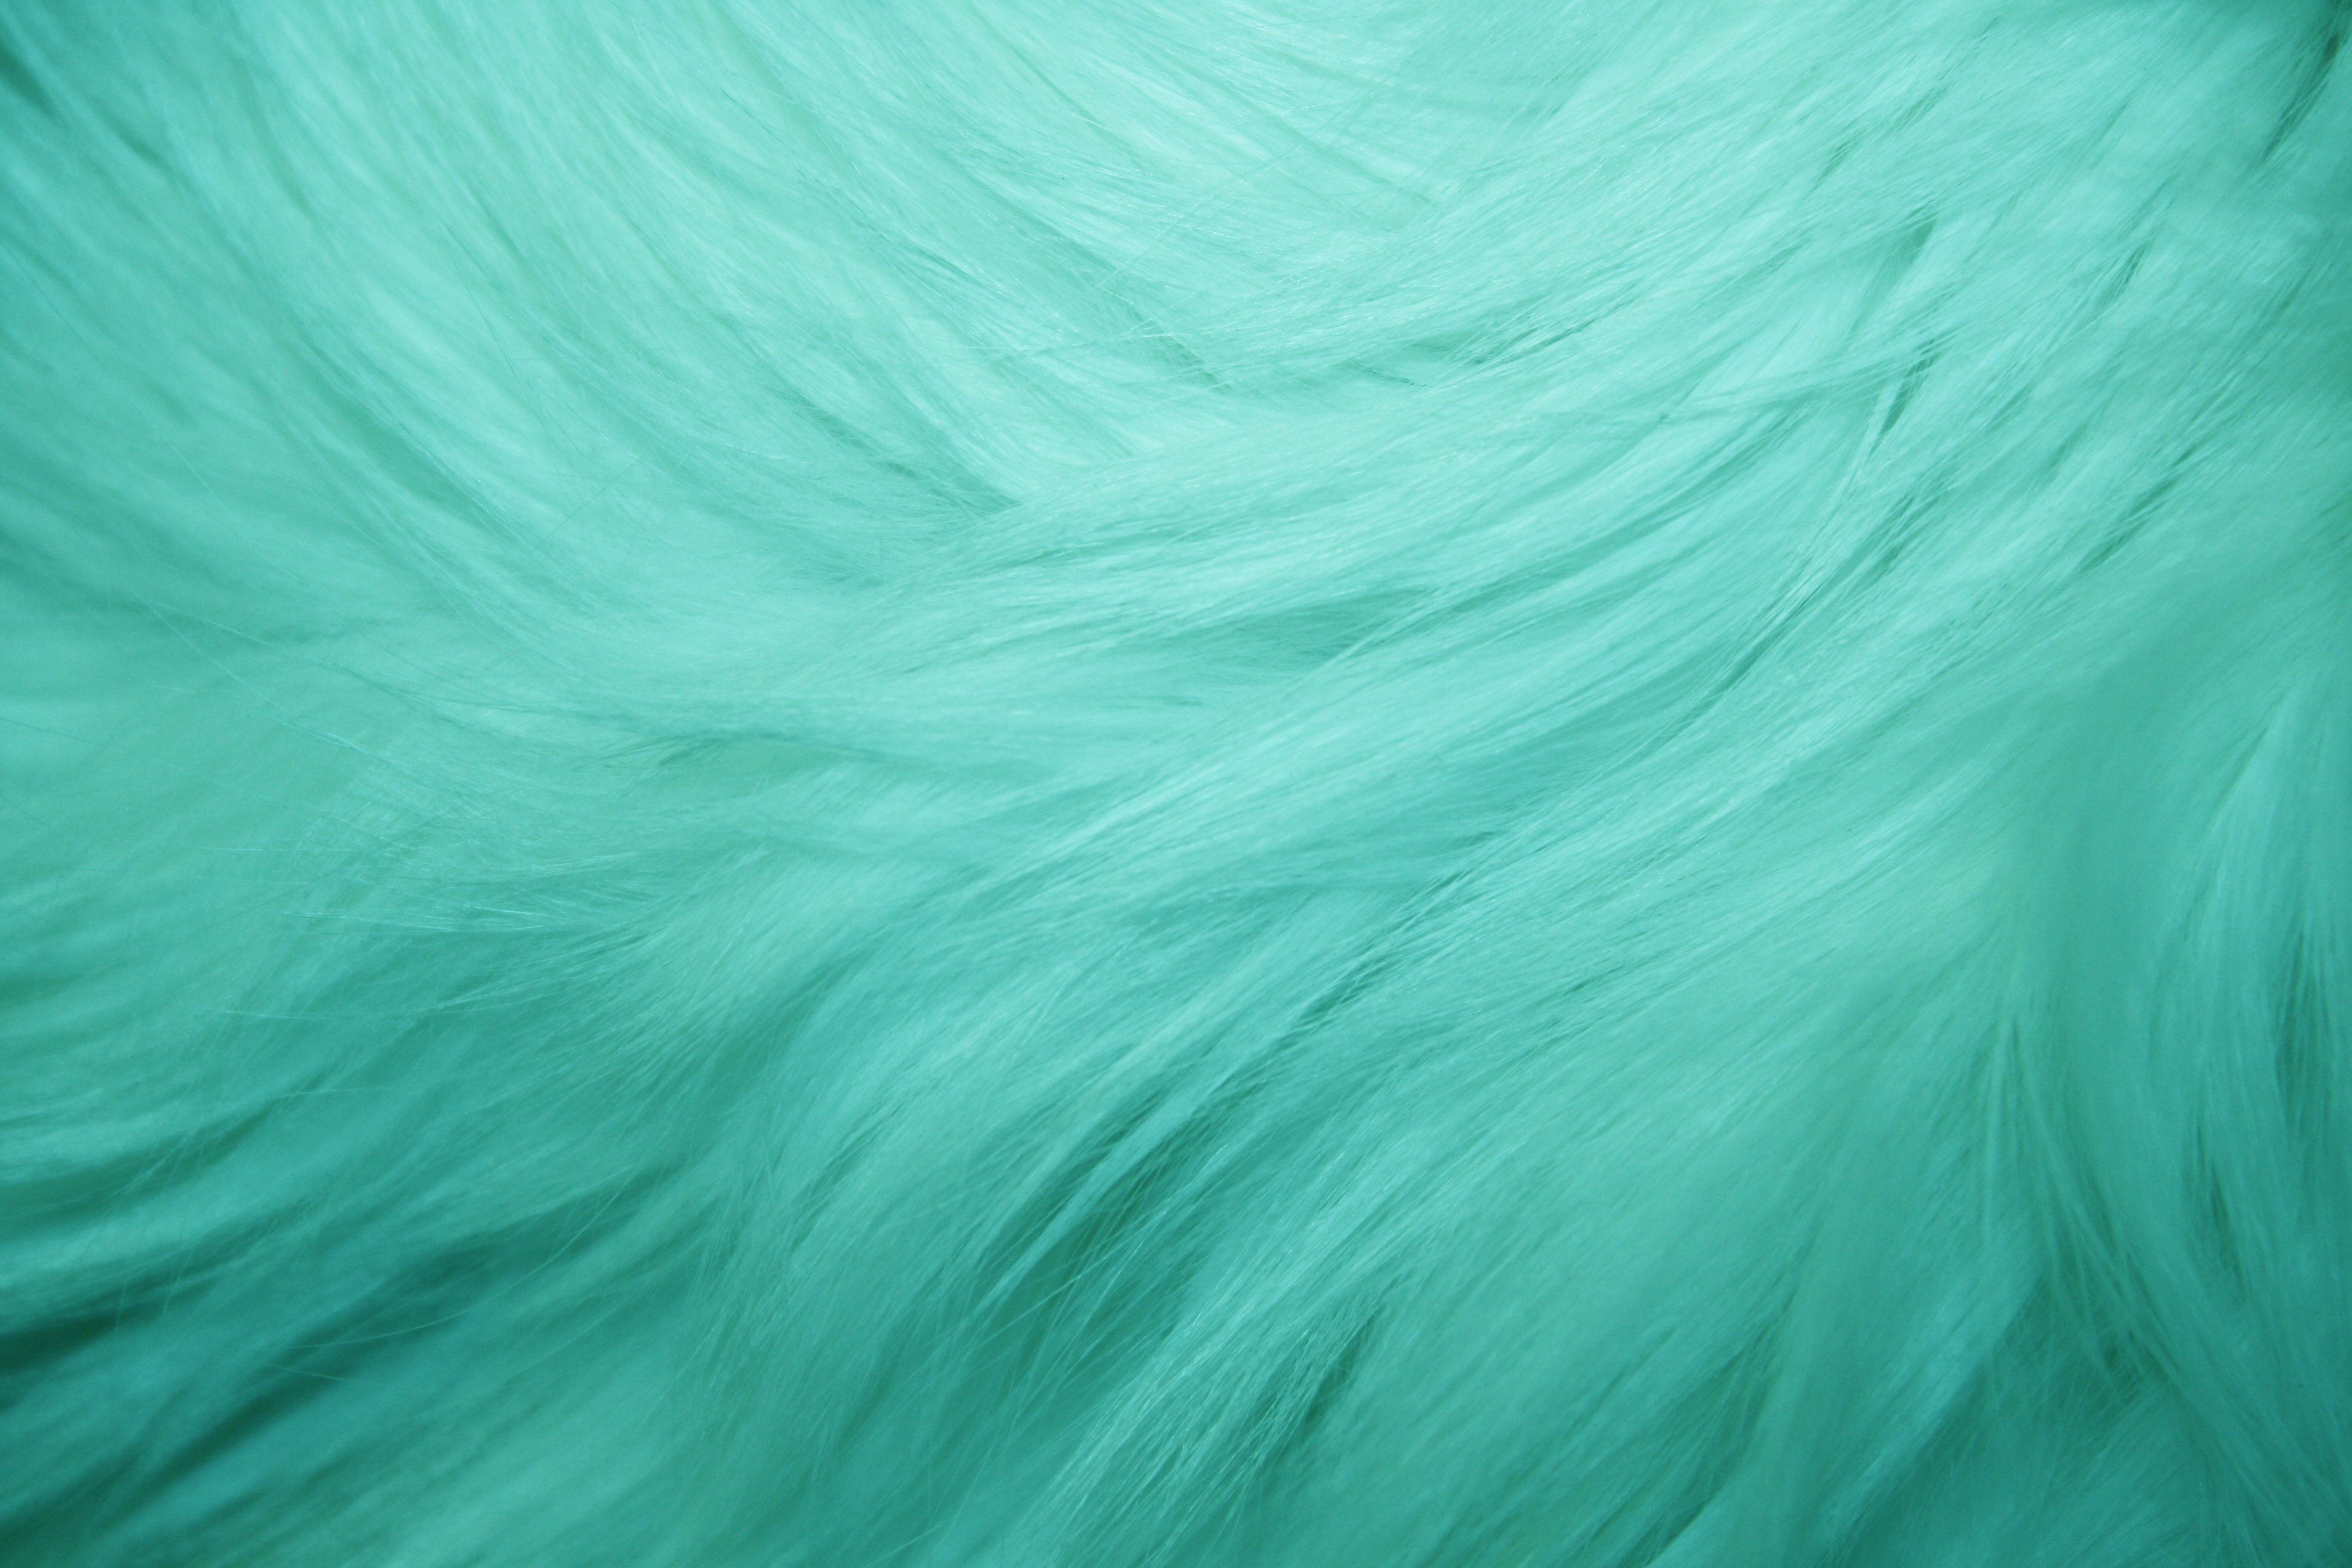 The Texture Of Teal And Turquoise: [45+] Teal Desktop Wallpaper On WallpaperSafari